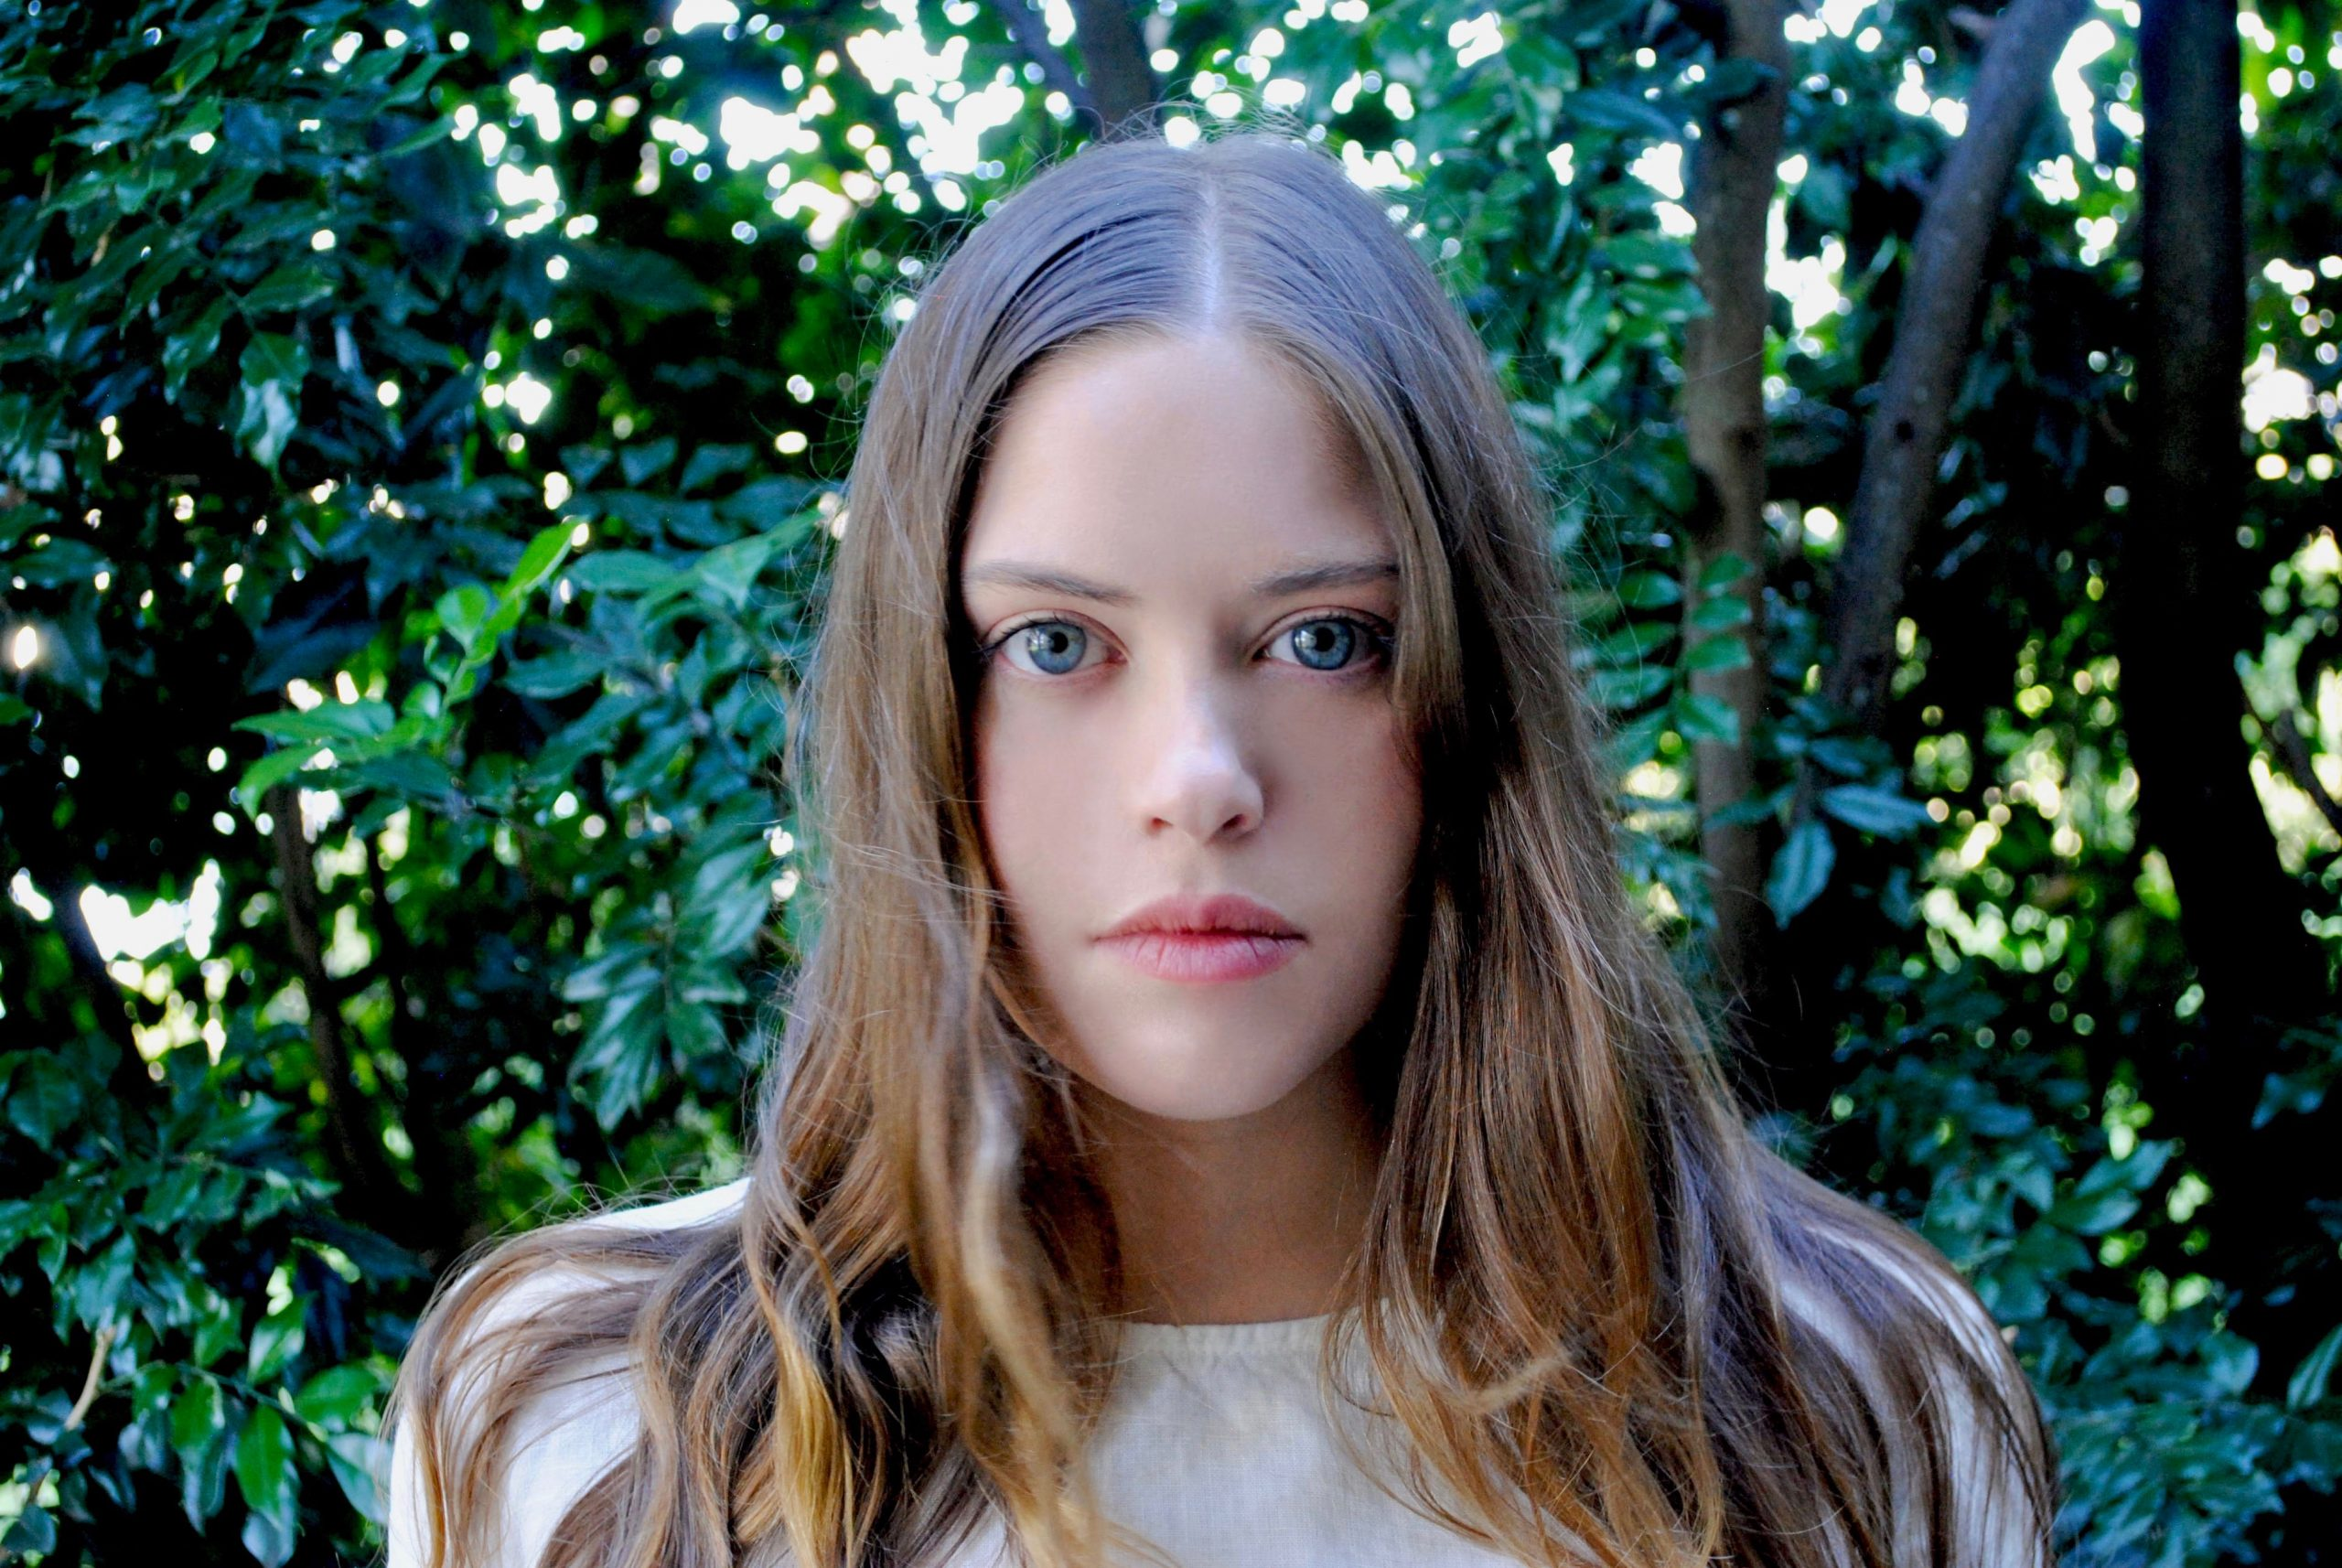 Grace Farriss Shares Timely New Single 'All The People'